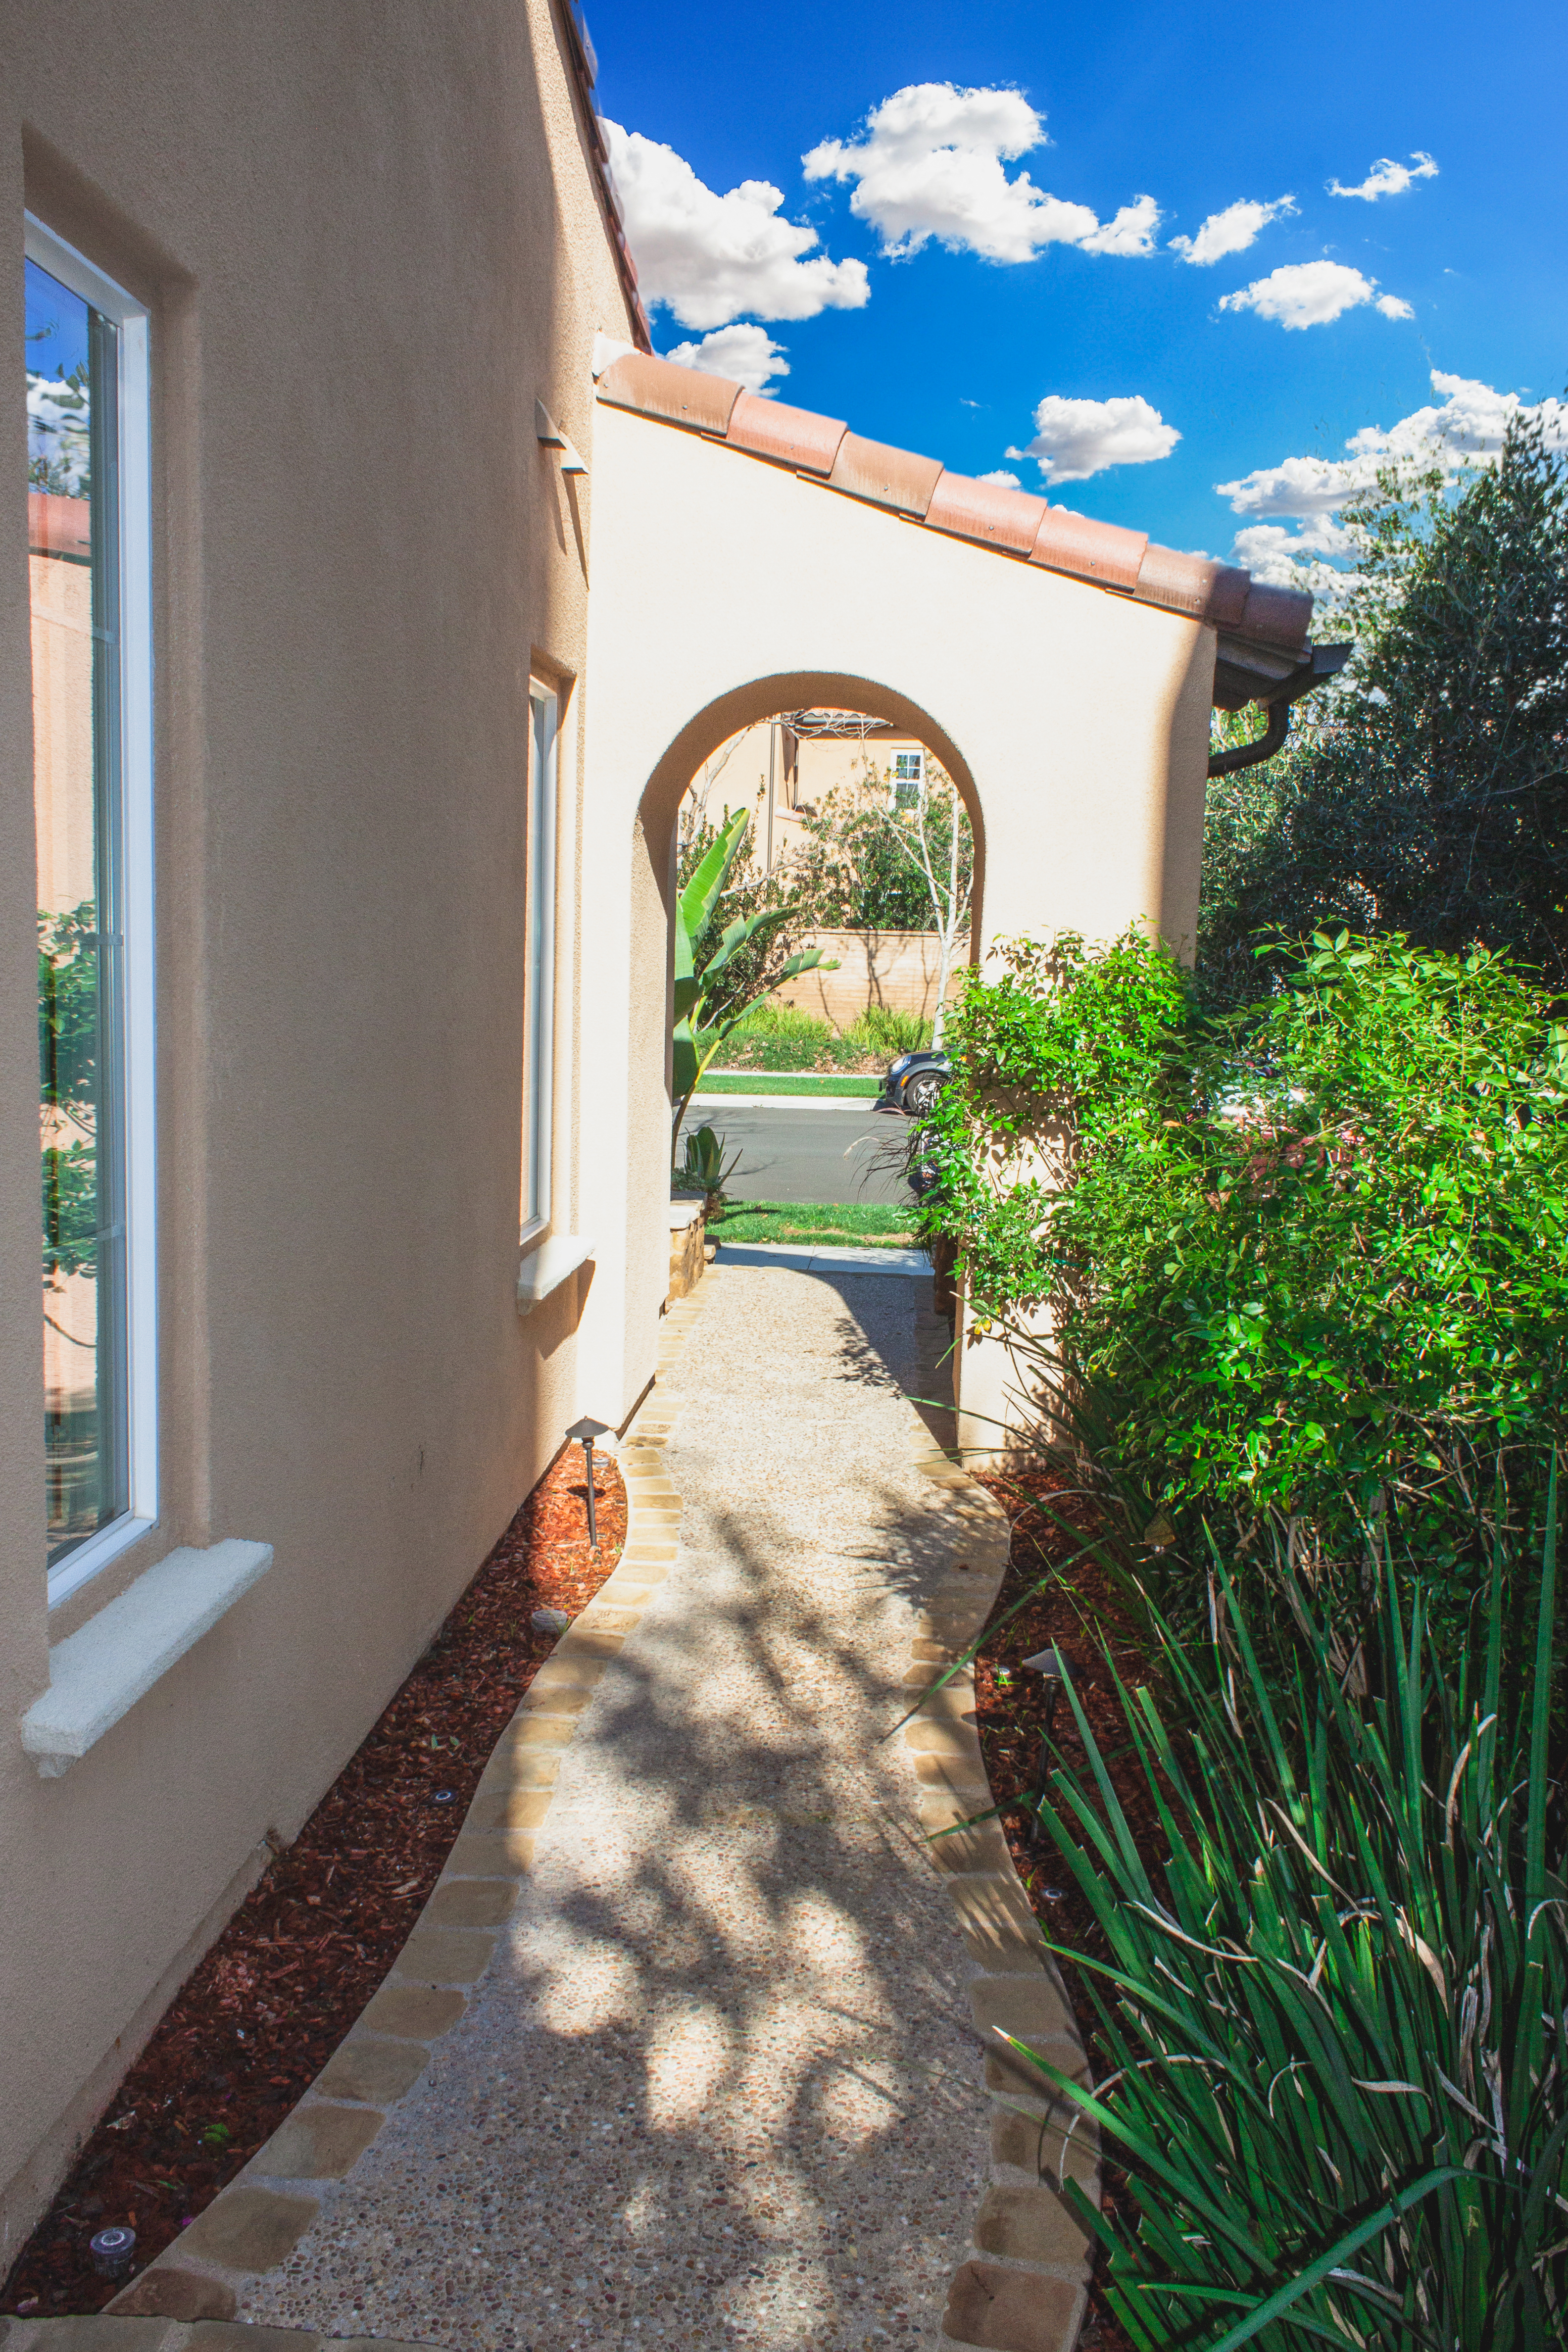 Walkway to the Home